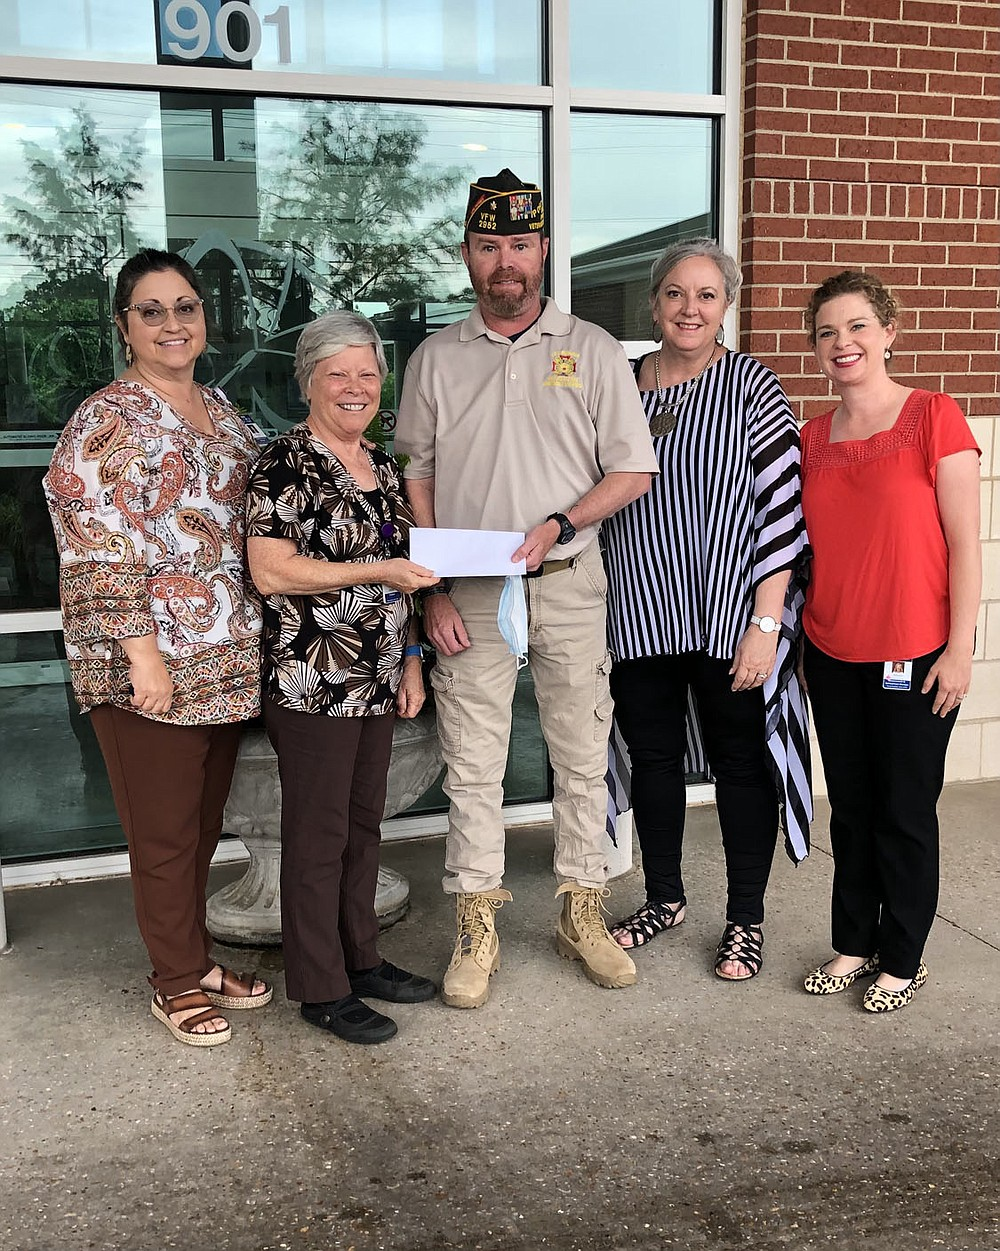 Wade Tharrington, Post Commander of Springdale Veterans of Foreign Wars Post 2952, presents a check for $1000 to Debby Holmes, Chaplain of Circle of Life Hospice in Springdale. VFW Post 2952 and the Post Auxiliary are very excited to be teaming to provide trained volunteers to visit Veteran residents at Circle of Life. (Pictured from left to right: Susan Parish, Debby Holmes, Wade Tharrington, Leslie Karnbach, and Allison Wright.)